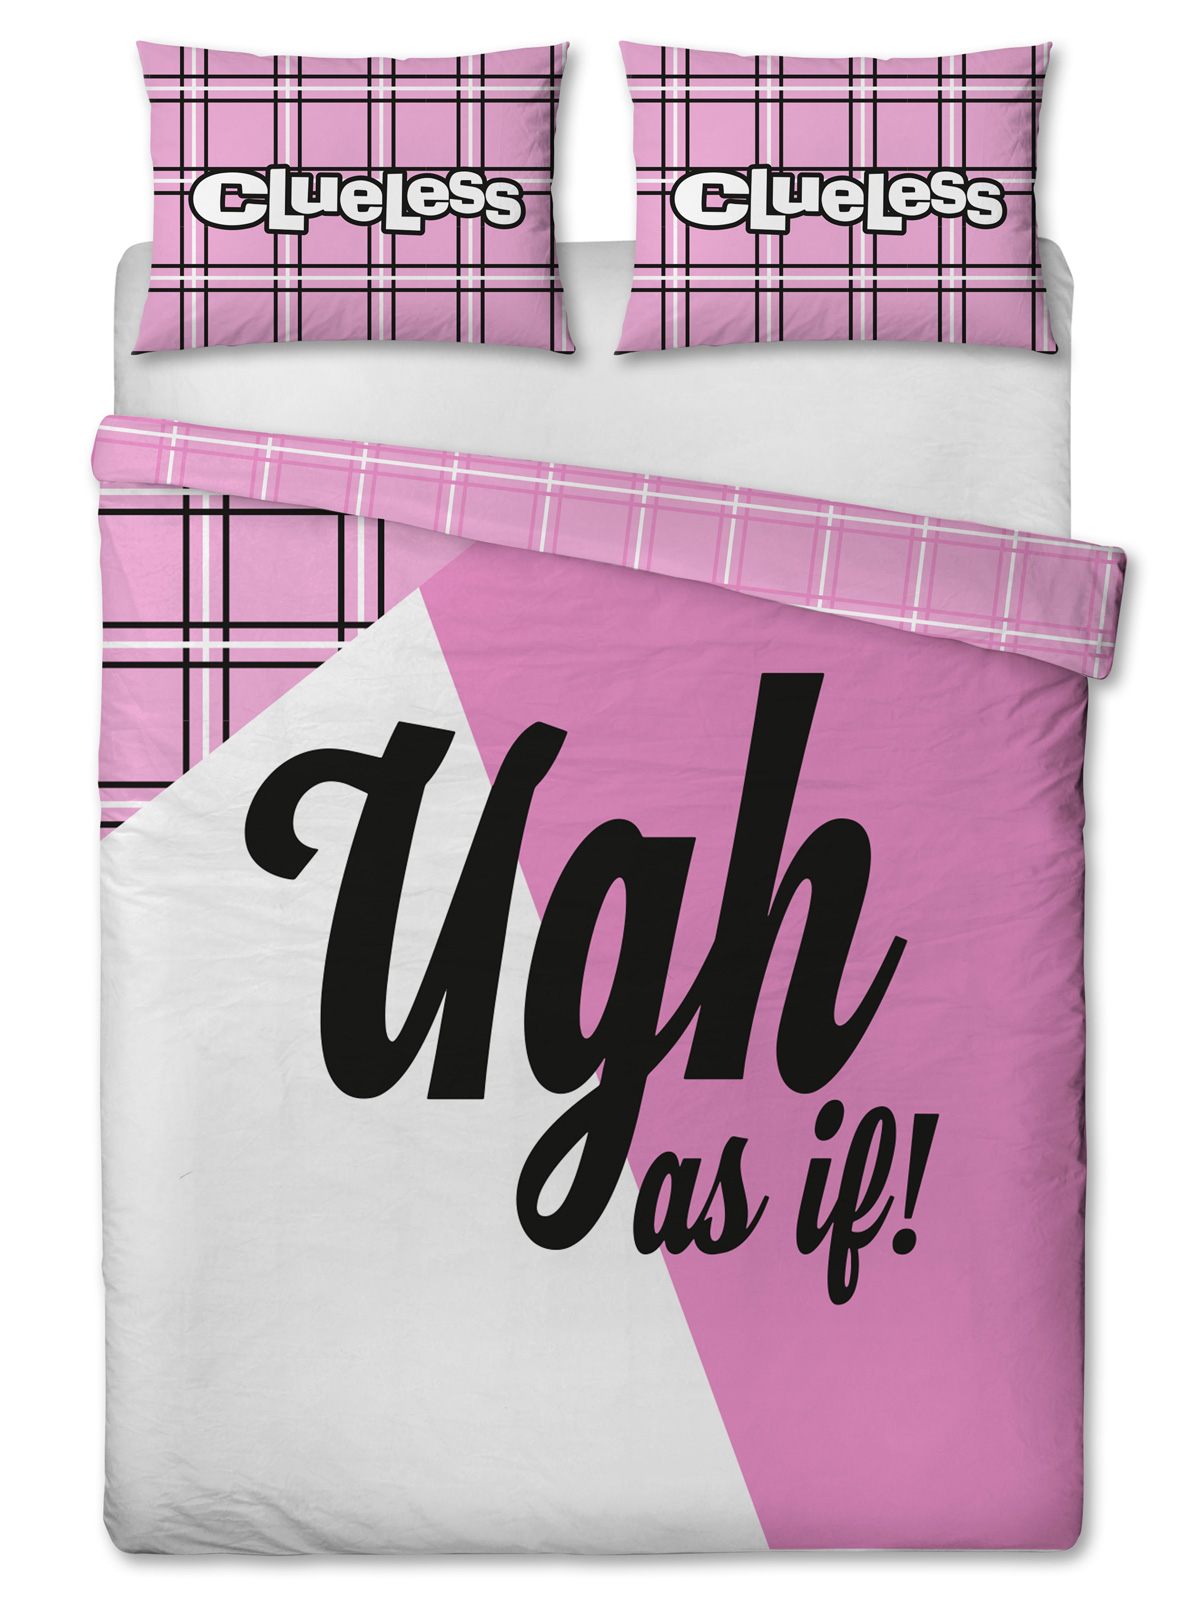 Clueless Icon Double Duvet Cover and Pillowcase Set